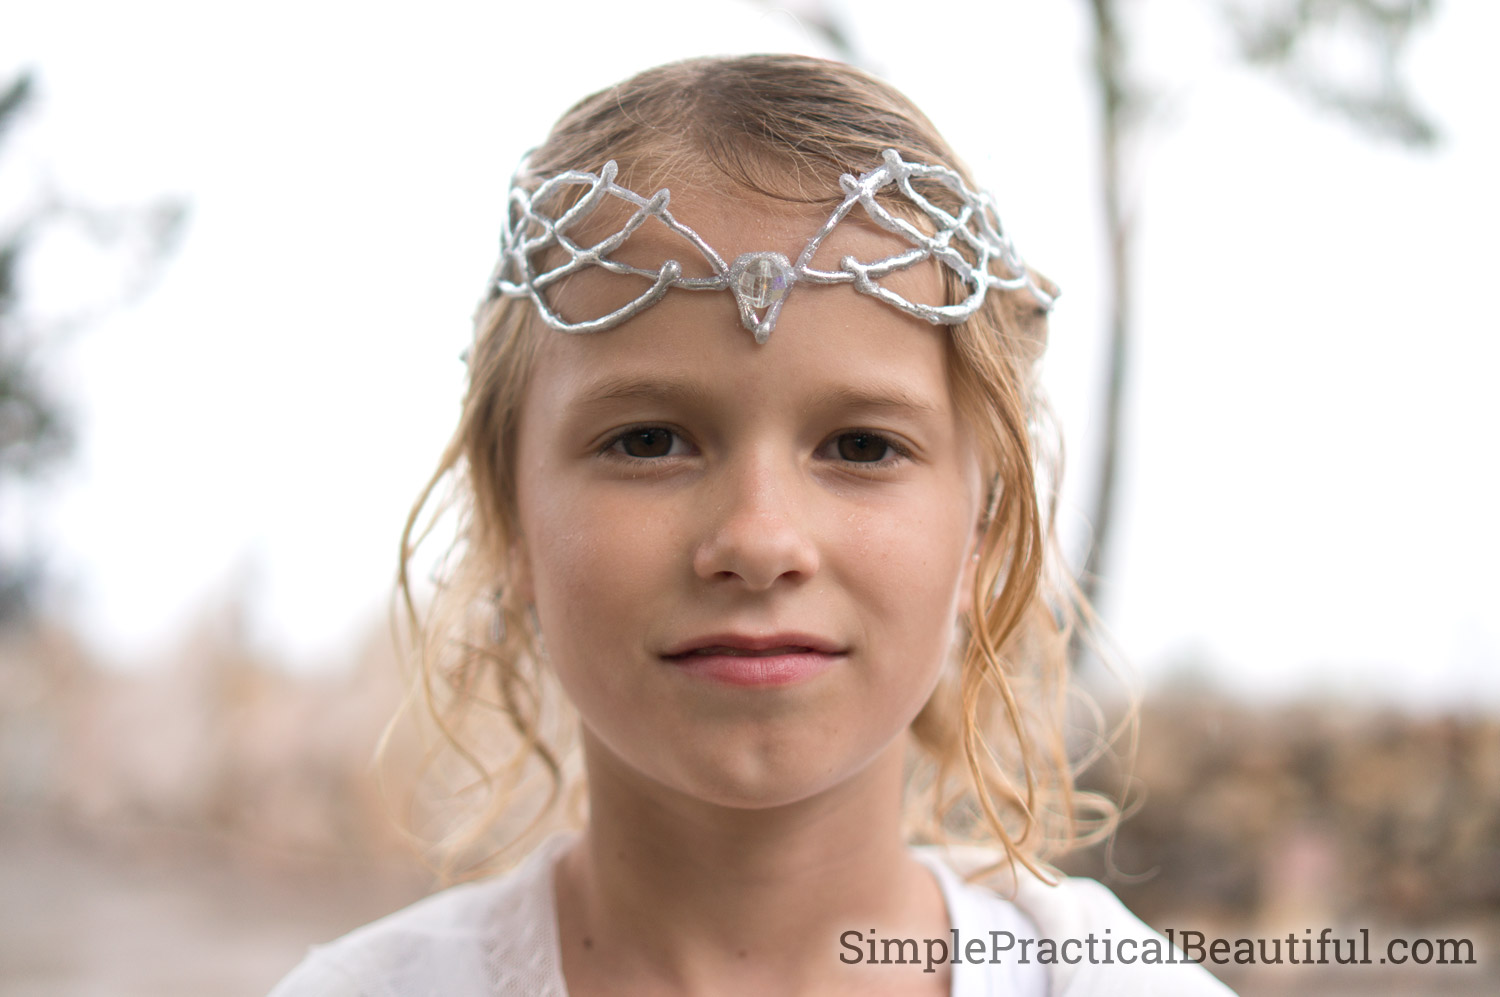 How to Make Galadriel's Crown - - 177.9KB